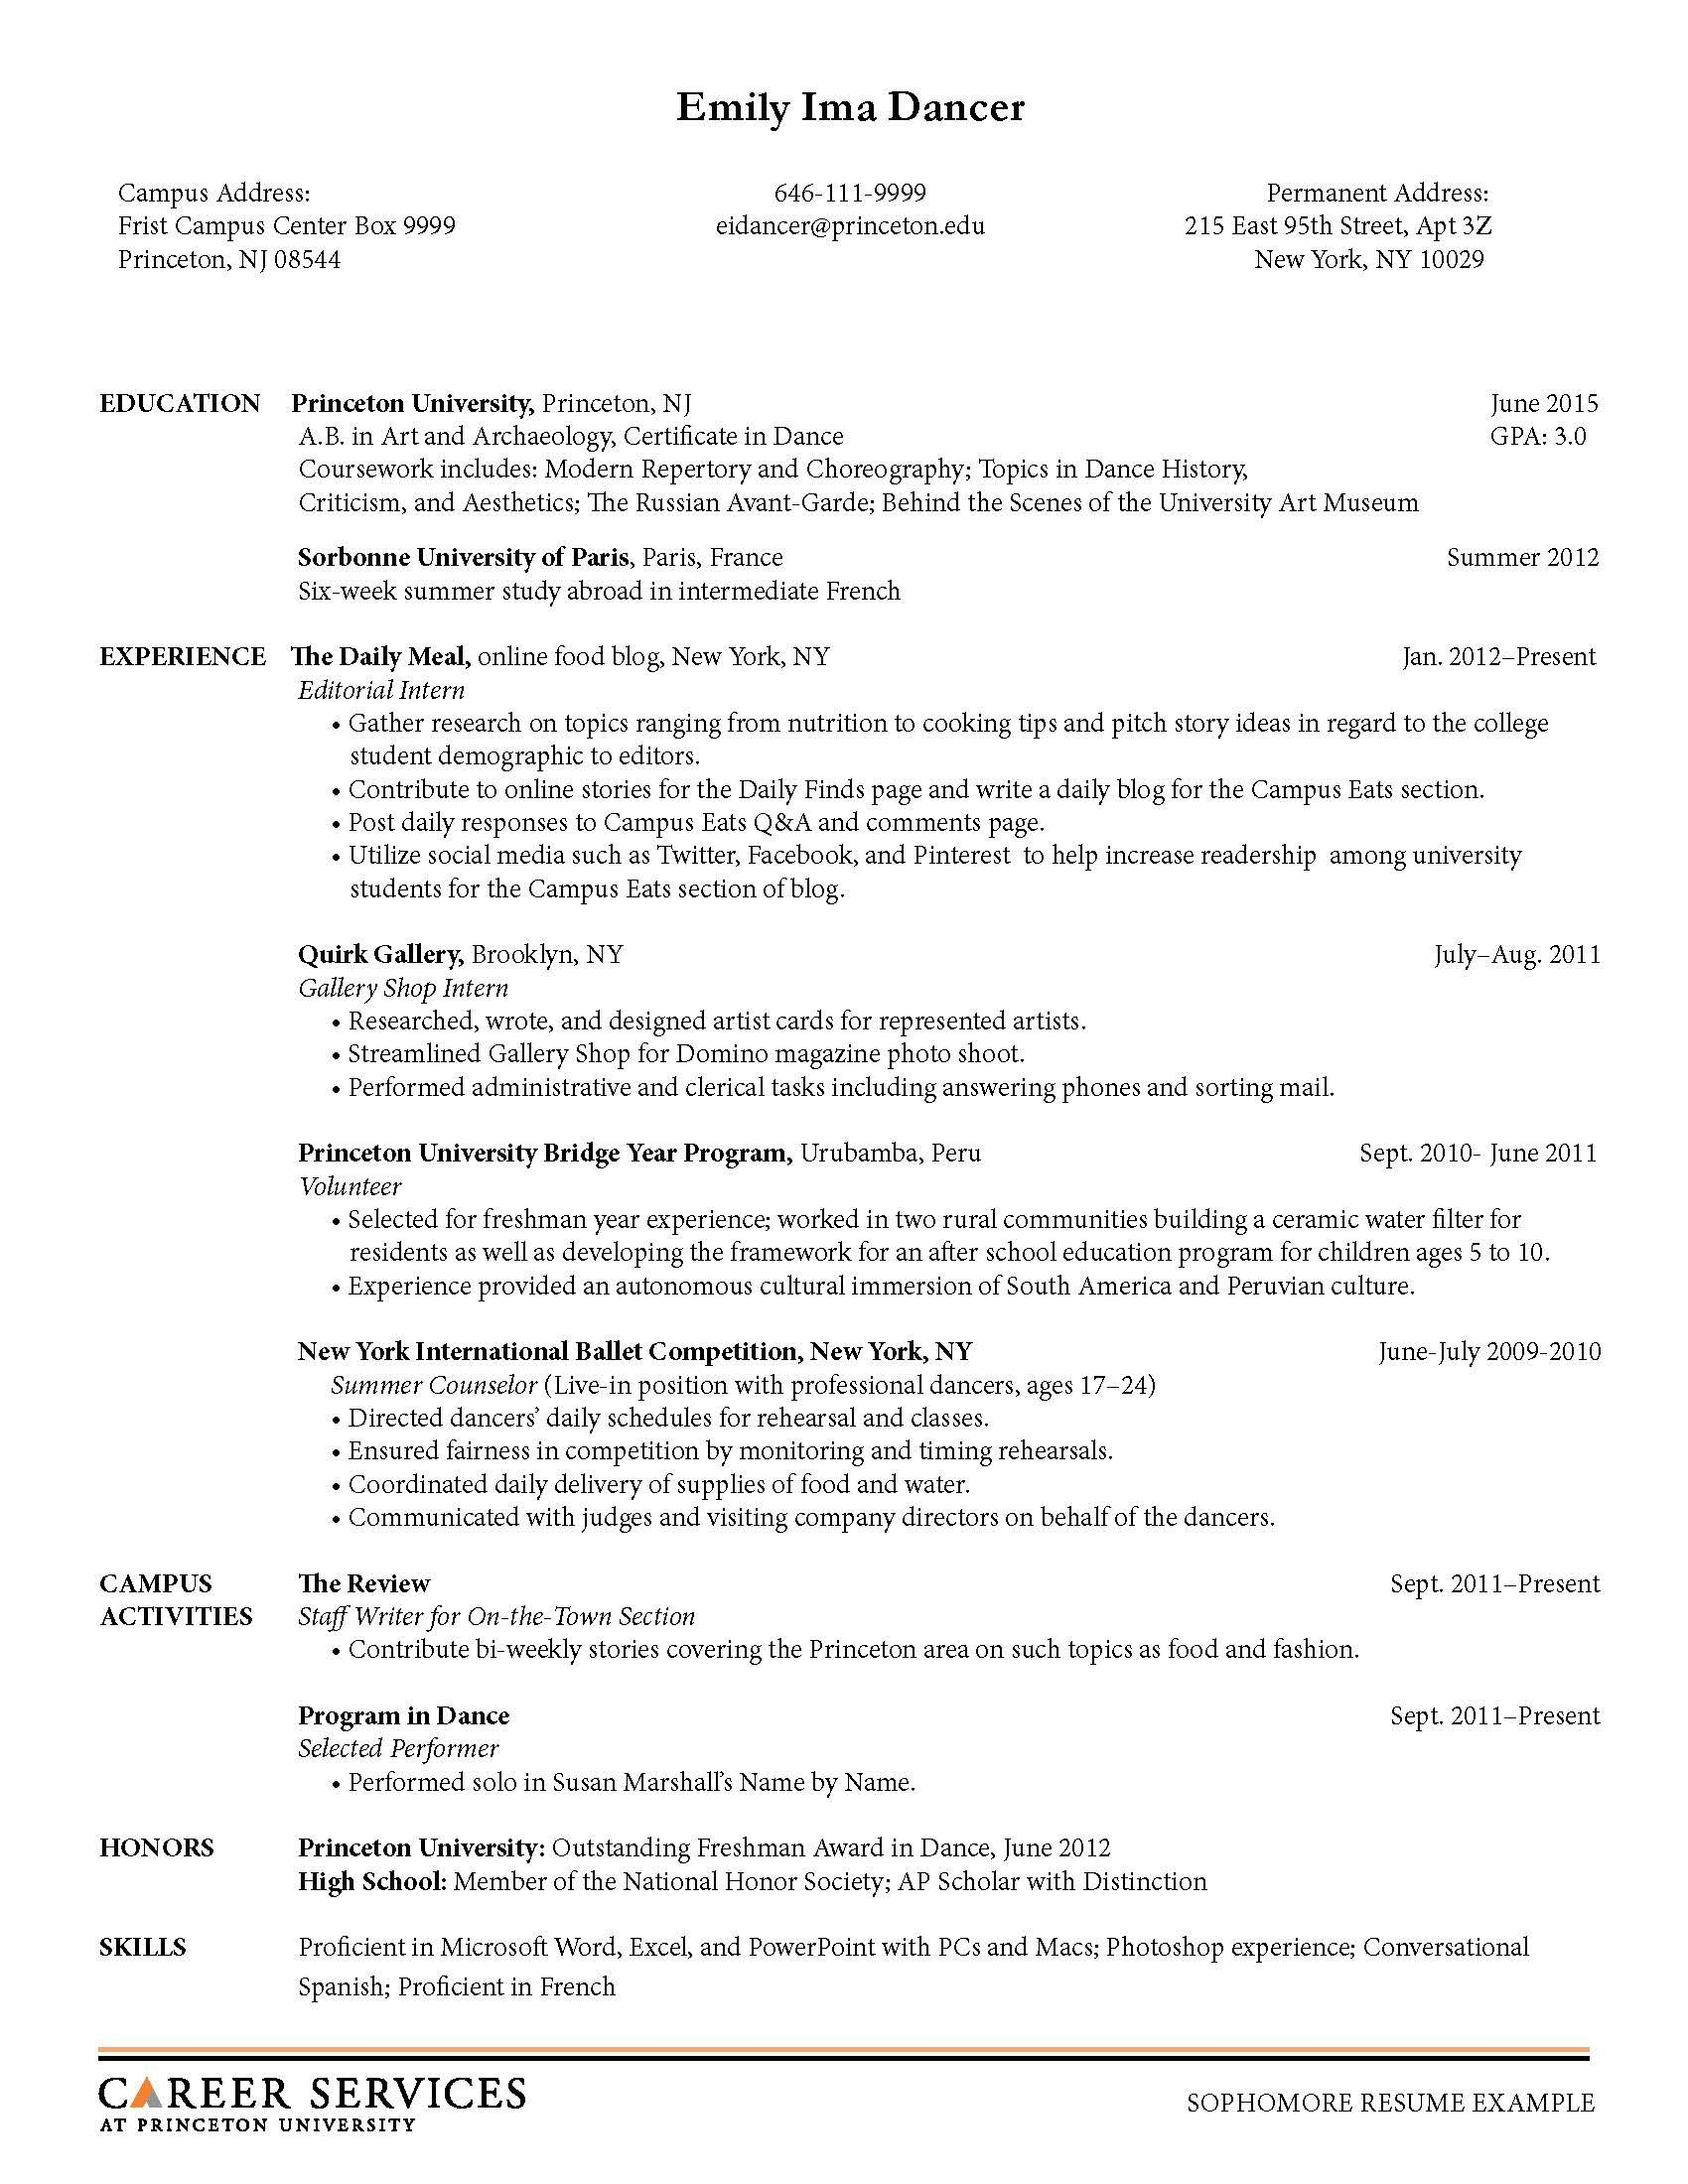 Opposenewapstandardsus  Marvellous Sample Resume Resume And Career On Pinterest With Foxy Free Download Resume Besides It Resume Writing Services Furthermore Security Job Resume With Divine Research Experience Resume Also Resume Letterhead In Addition Professional Resume Paper And Help Building A Resume As Well As Sales Manager Resume Examples Additionally Ui Designer Resume From Pinterestcom With Opposenewapstandardsus  Foxy Sample Resume Resume And Career On Pinterest With Divine Free Download Resume Besides It Resume Writing Services Furthermore Security Job Resume And Marvellous Research Experience Resume Also Resume Letterhead In Addition Professional Resume Paper From Pinterestcom